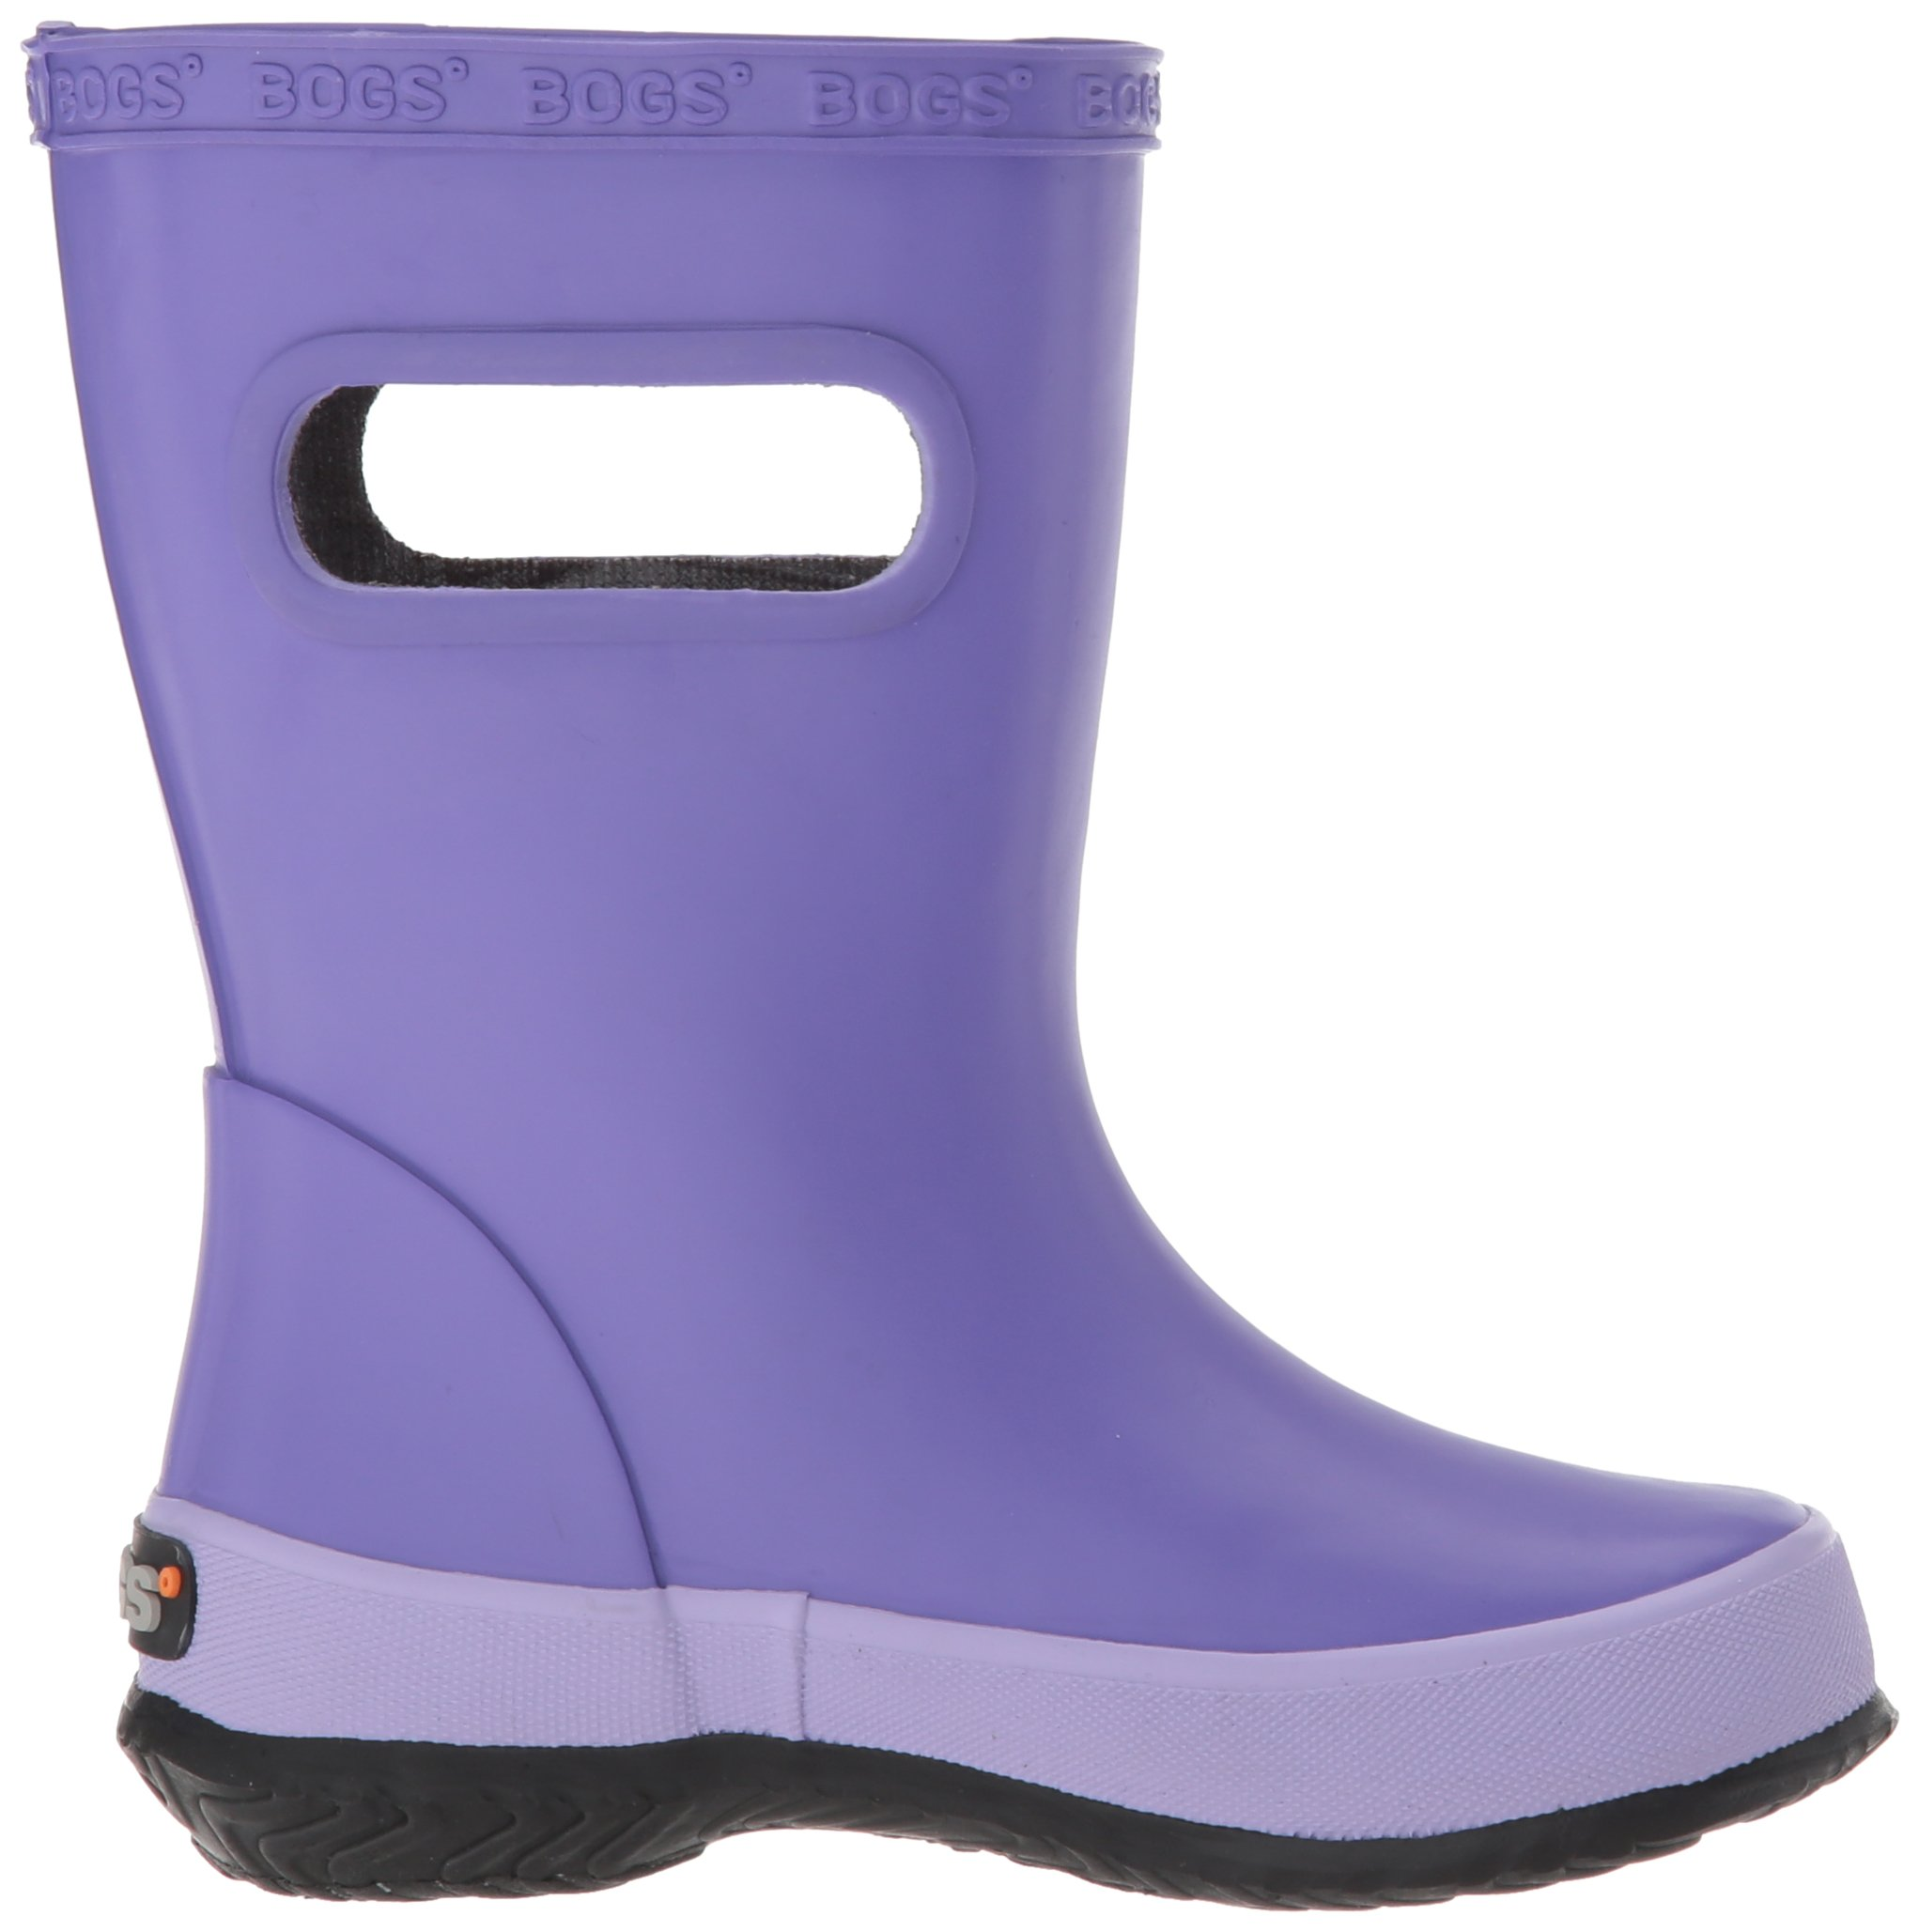 Bogs Kids' Skipper Waterproof Rubber Rain Boot for Boys and Girls,Solid Violet,11 M US Little Kid by Bogs (Image #7)